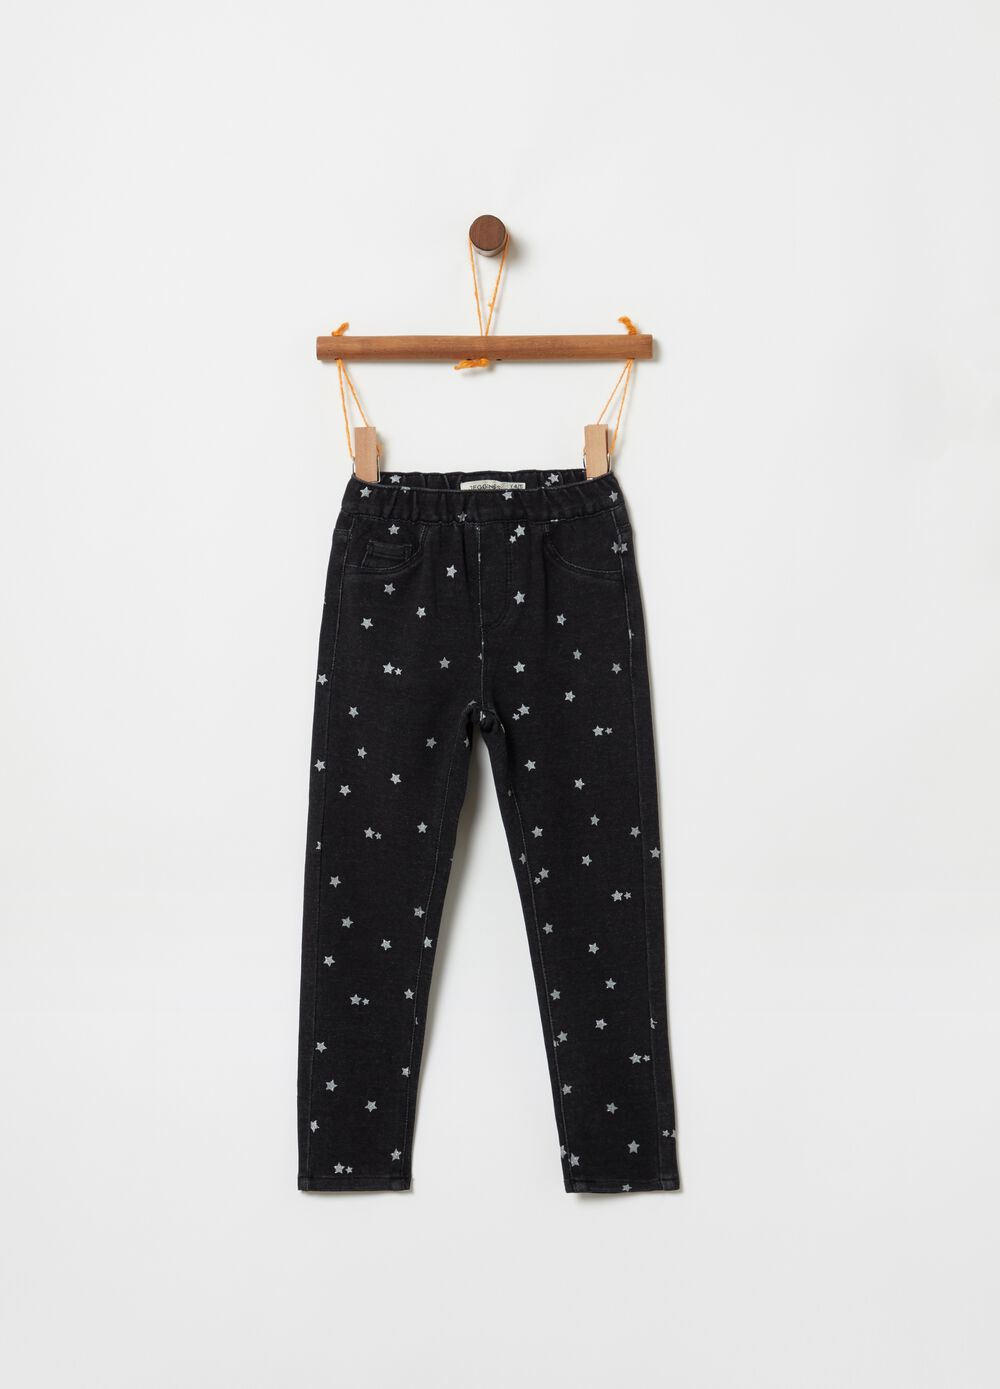 Stretch jeggings with glitter stars pattern